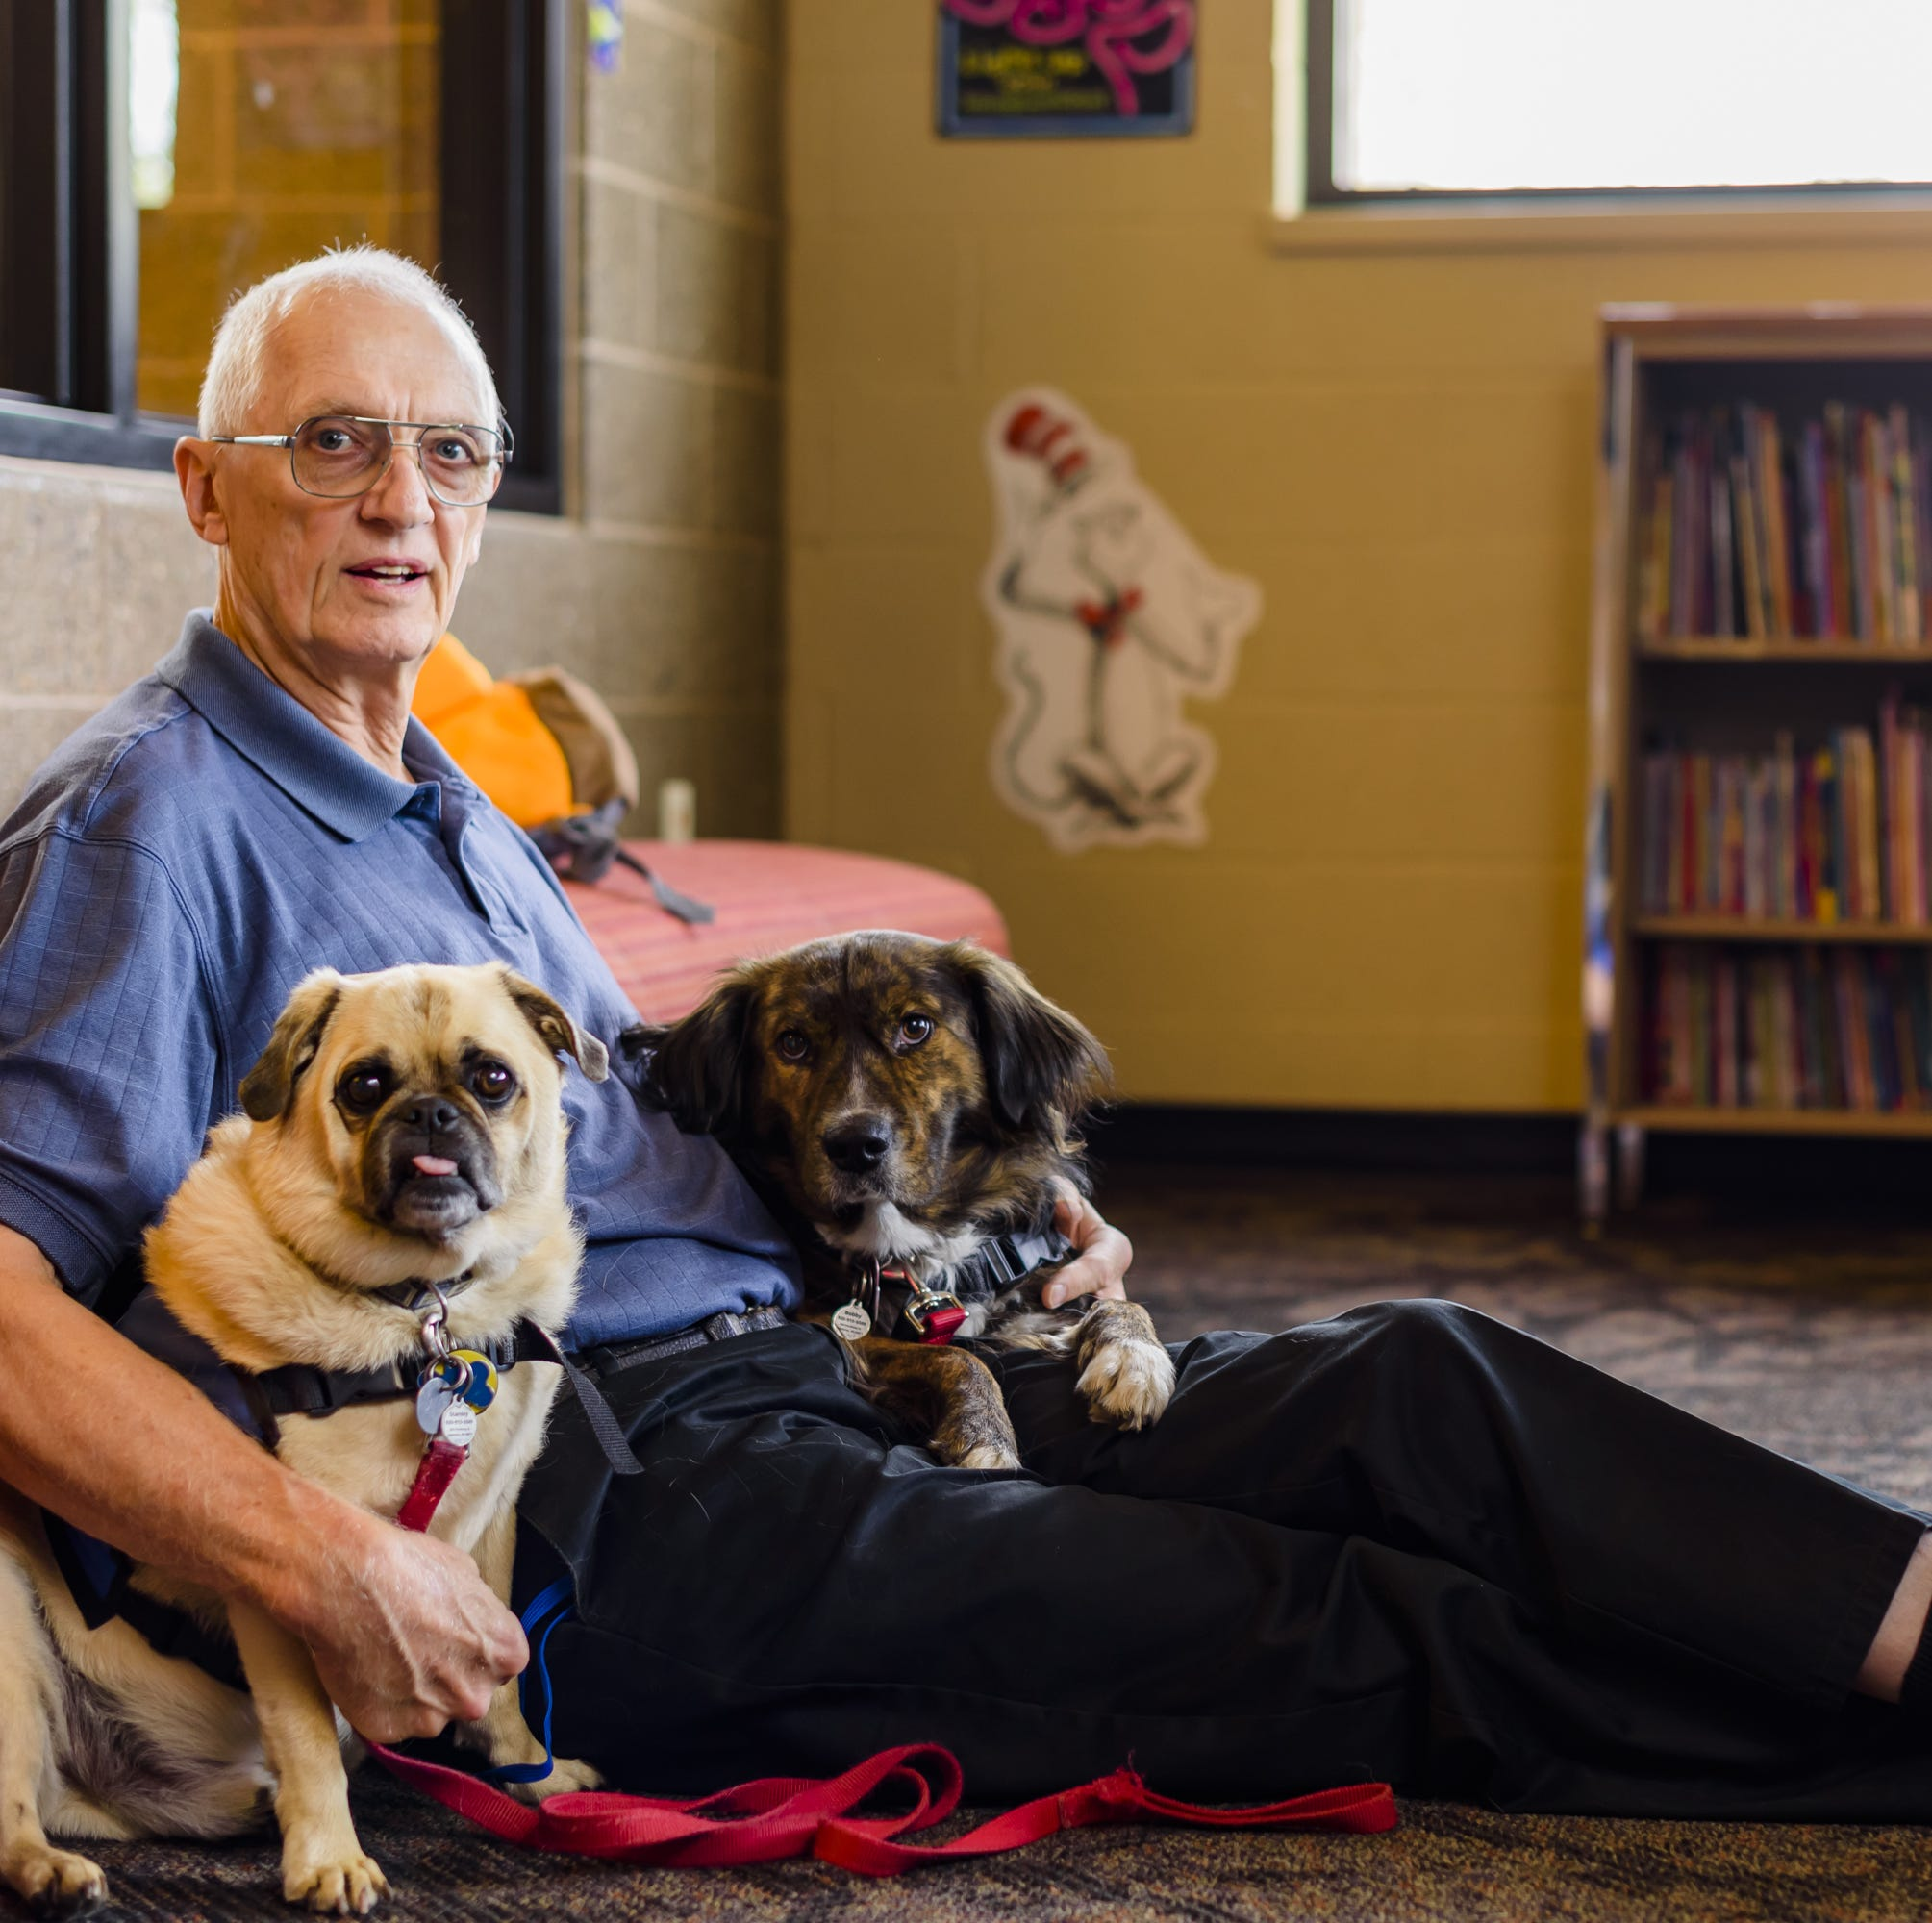 Working with therapy dogs and kids is rewarding for Appleton man